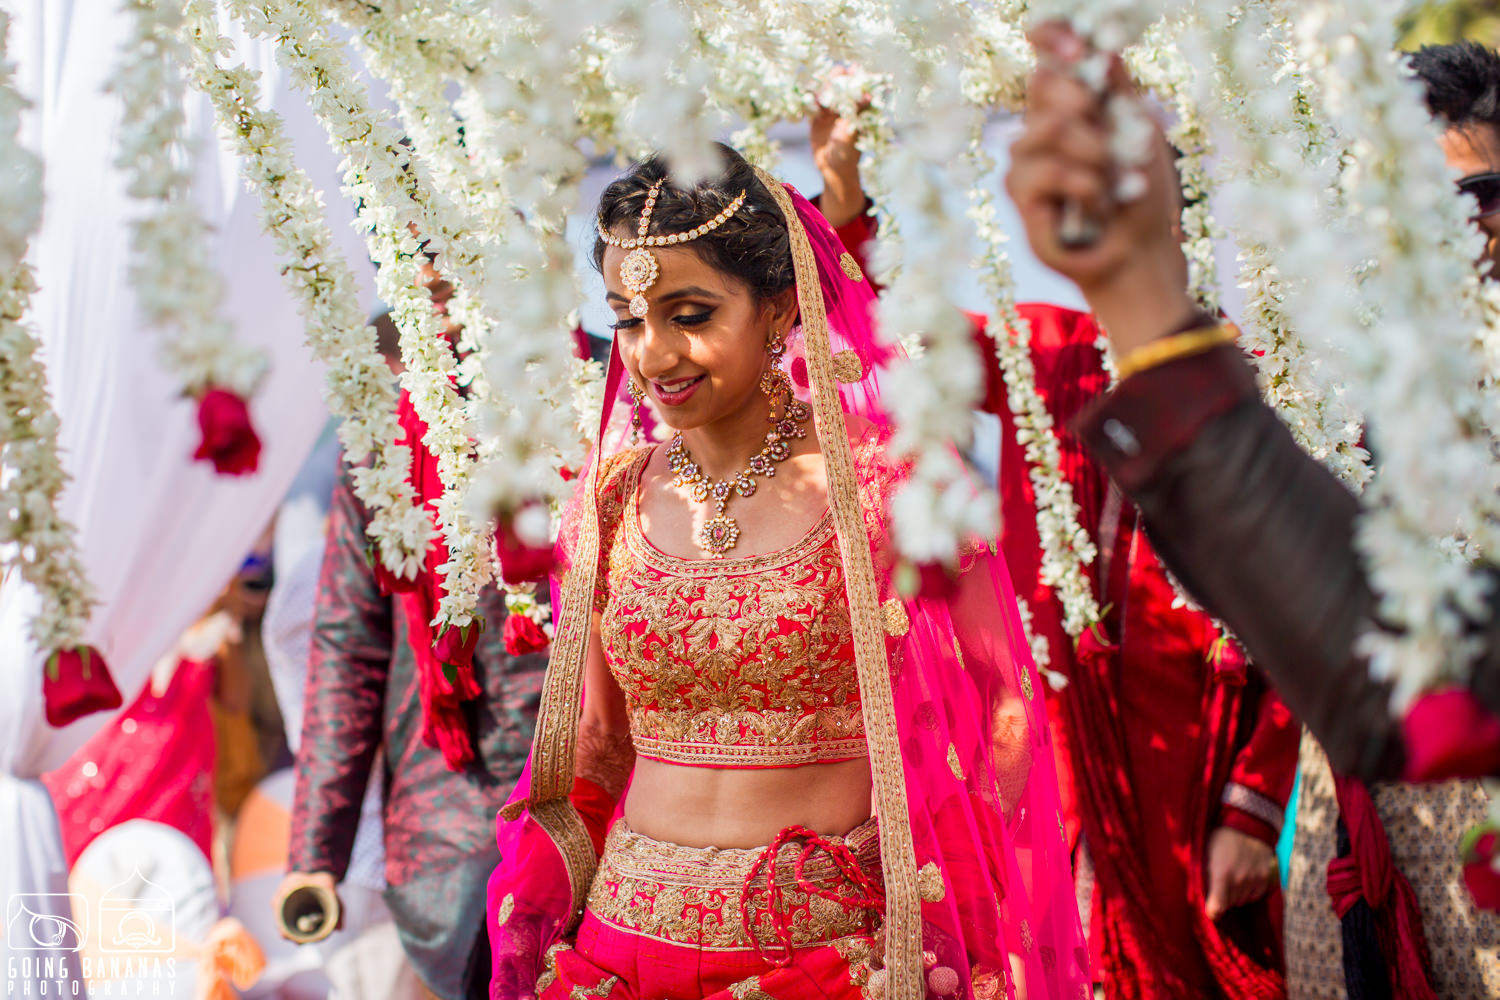 the bride shivani!:manyavar, going bananas photography, makeovers by sukanya, design tuk tuk